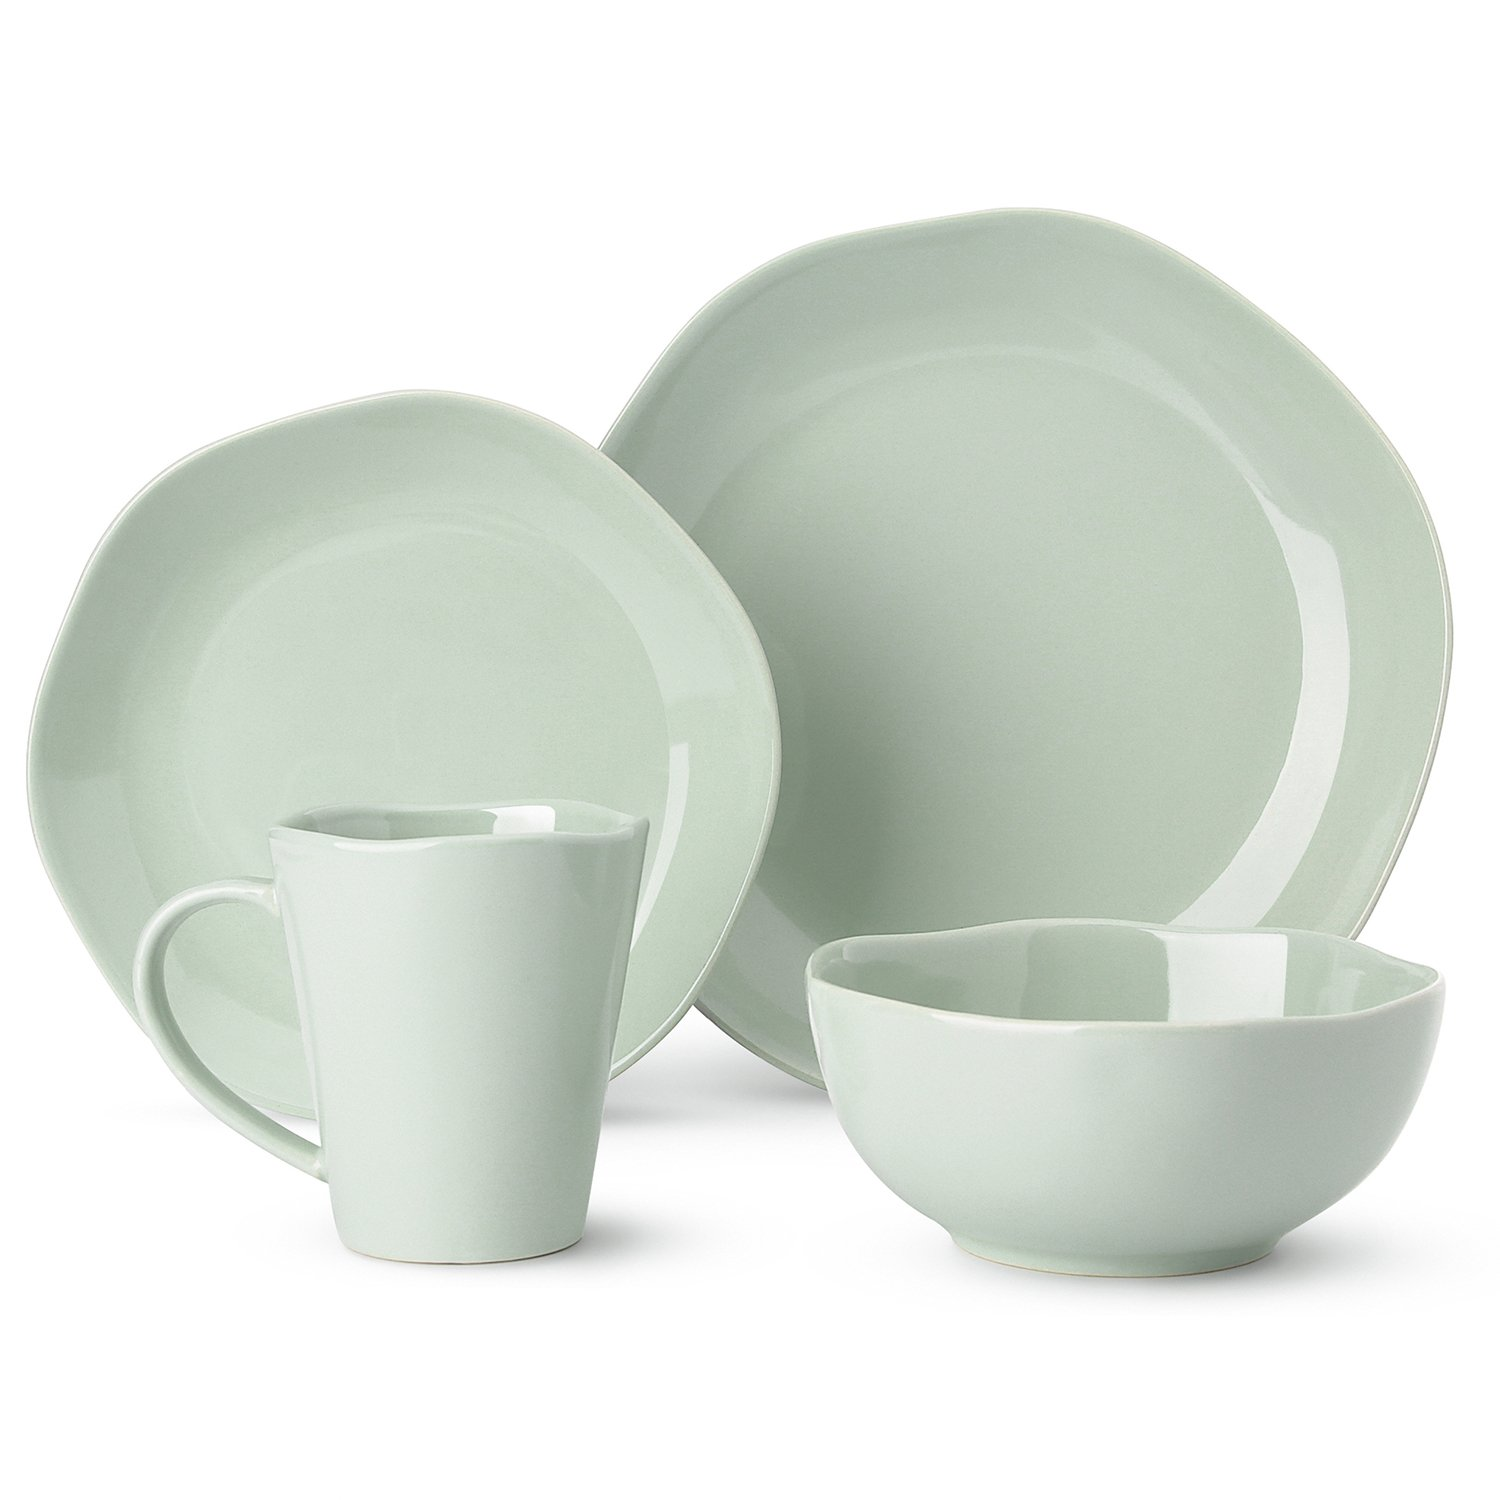 Dishes Dinnerware Set Irregular Glaze Dishware Set,Tableware Set One Set Service for One Person,Grey Blue